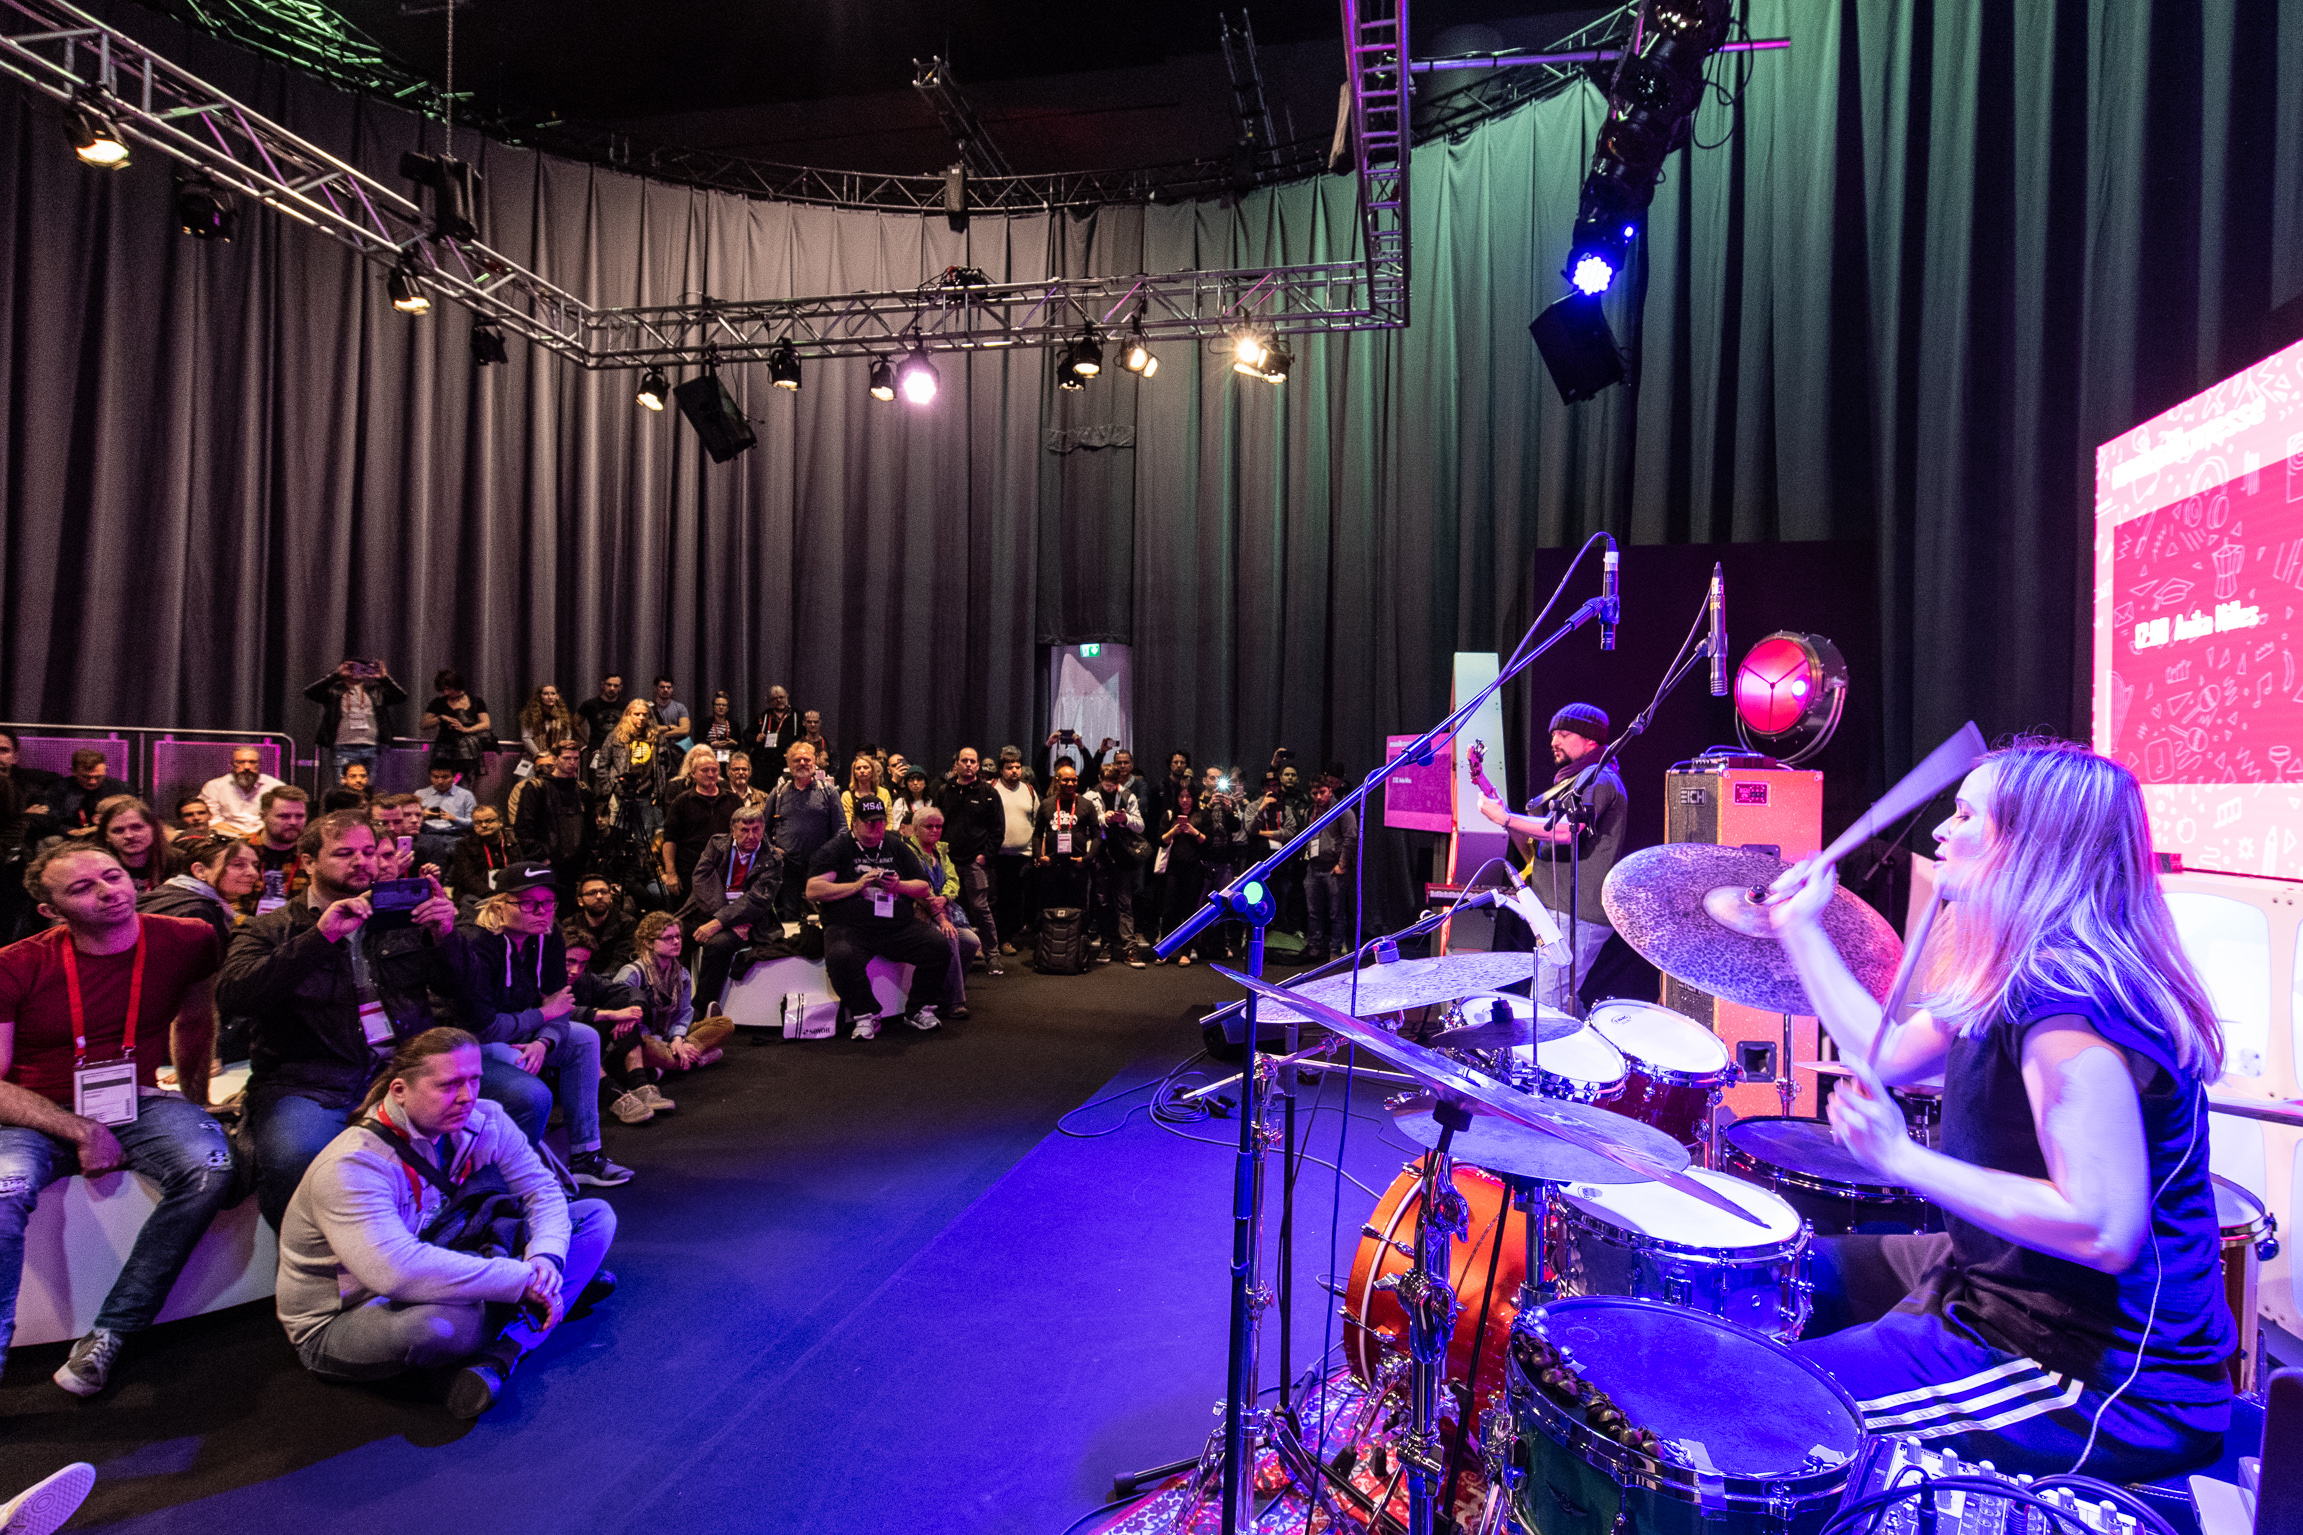 musikmesse + prolight+sound 2019